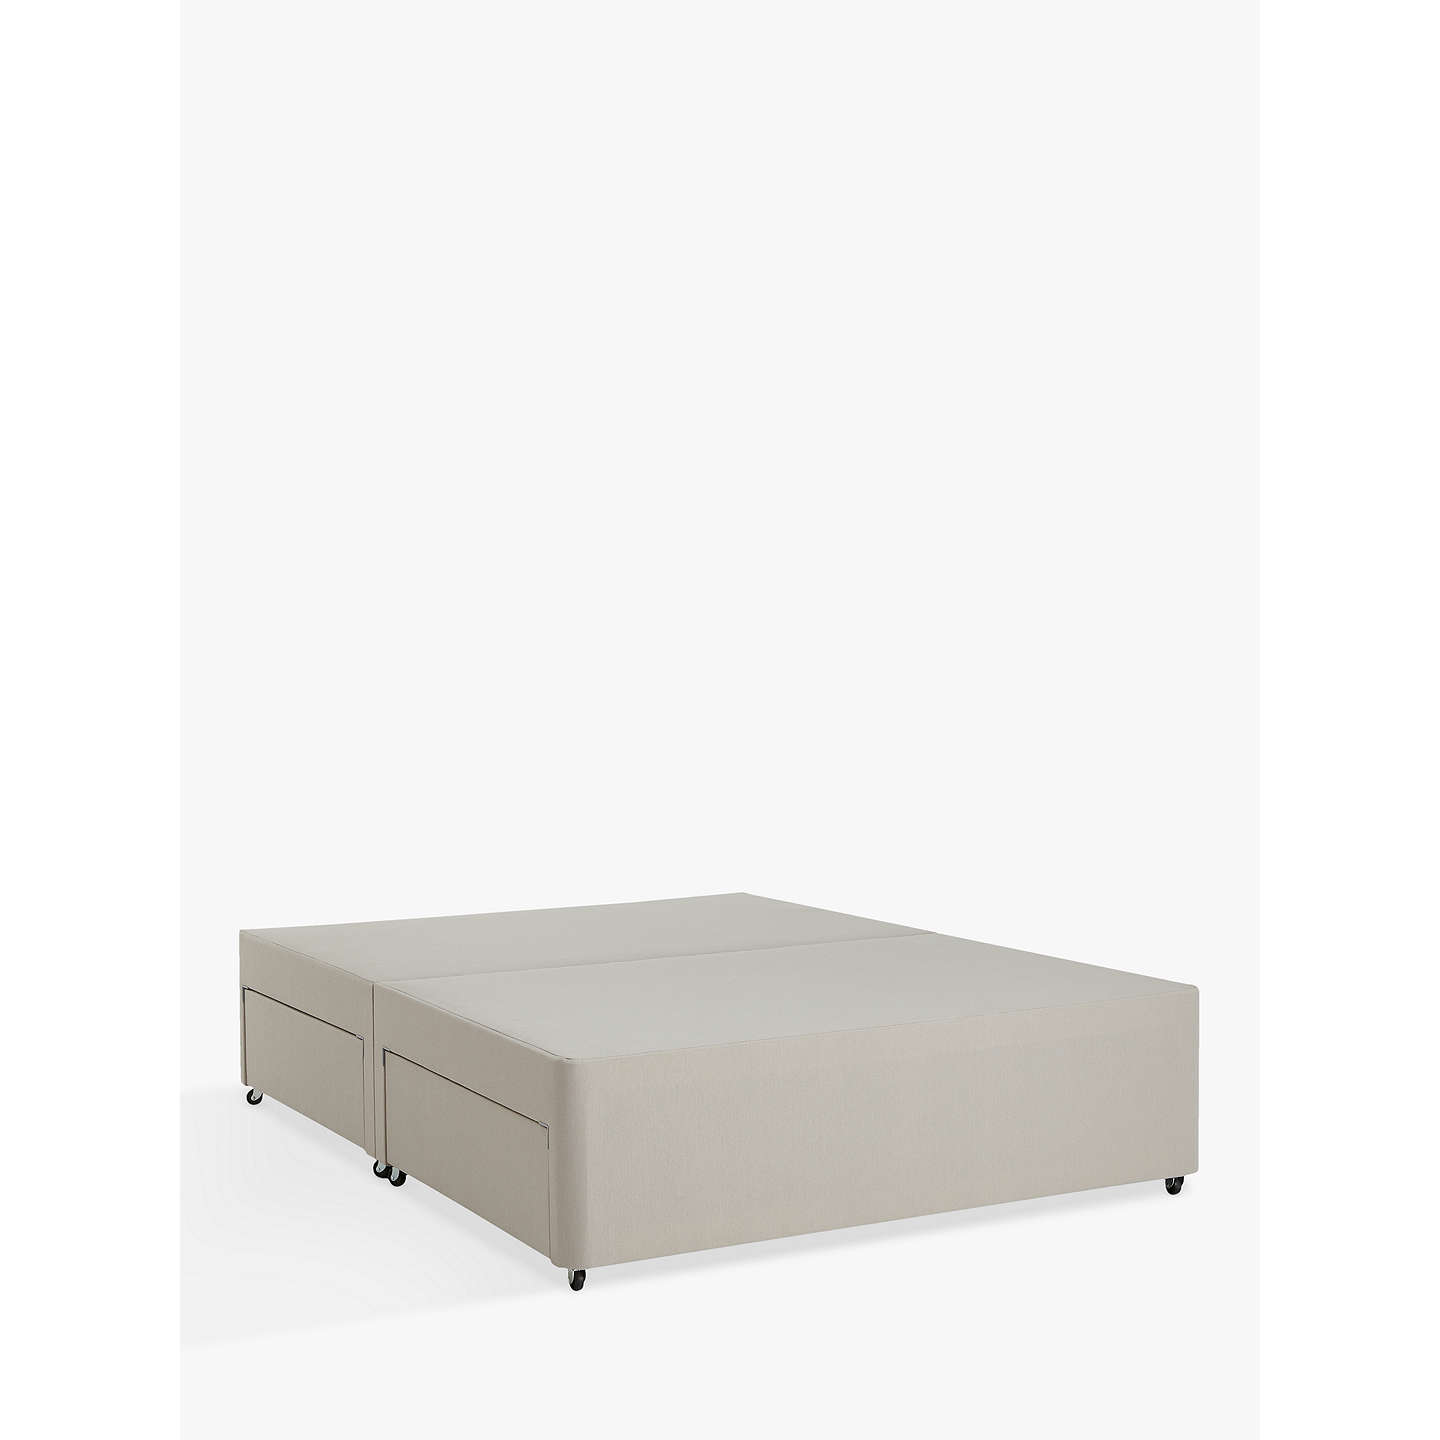 John lewis non sprung four drawer divan storage bed for King size divan bed base with 4 drawers